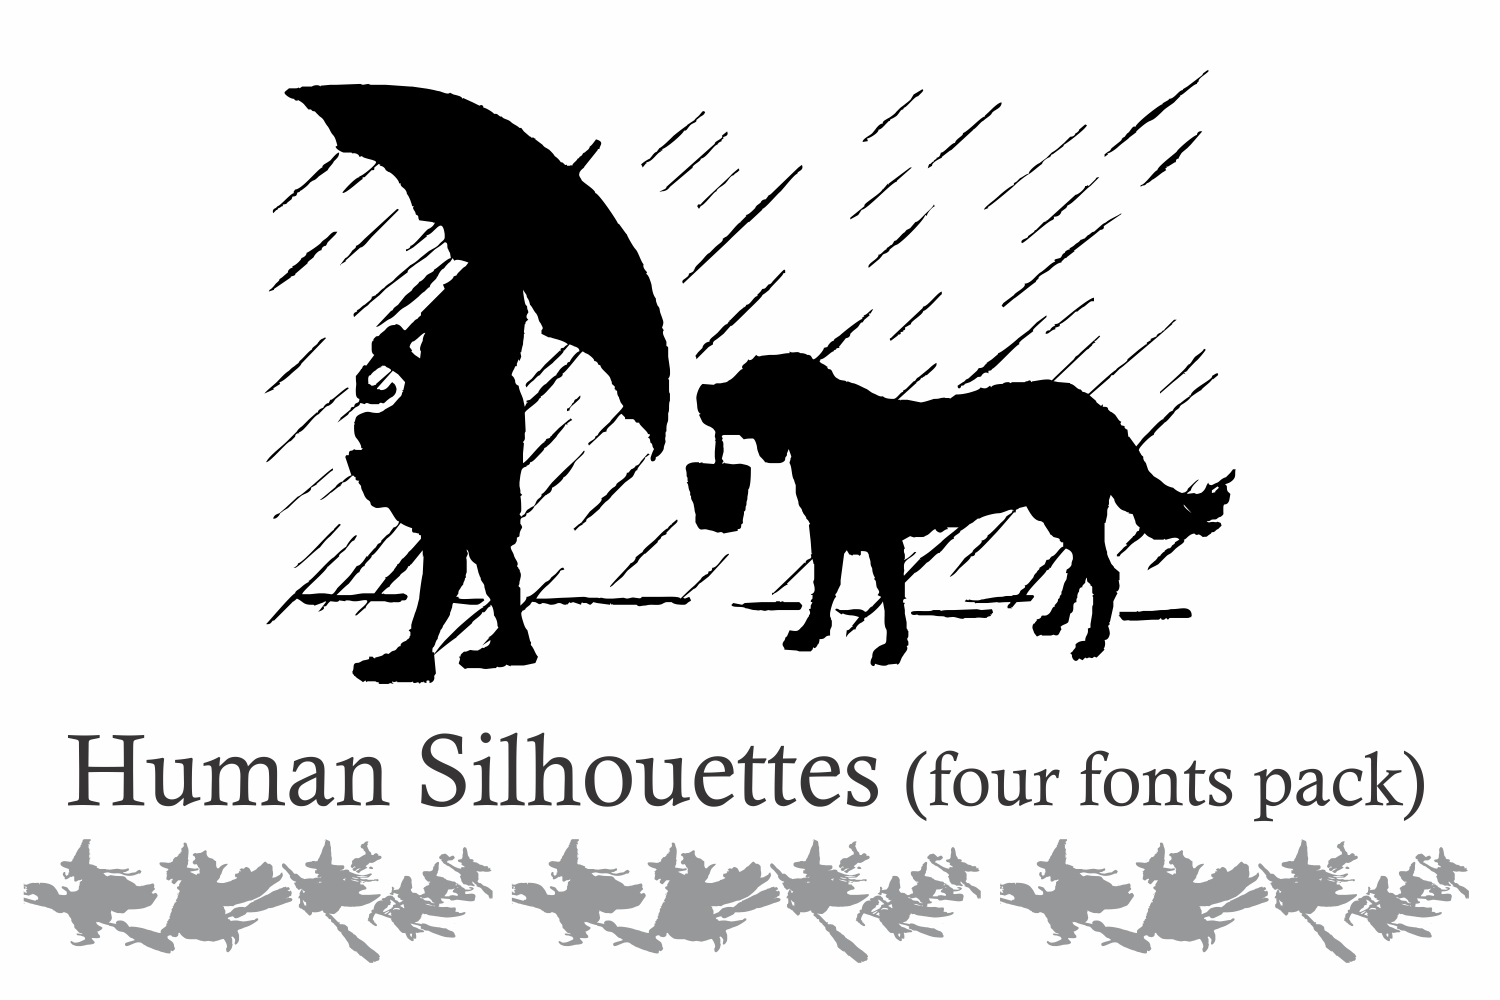 Human Silhouettes Pack - 4 Fonts example image 3